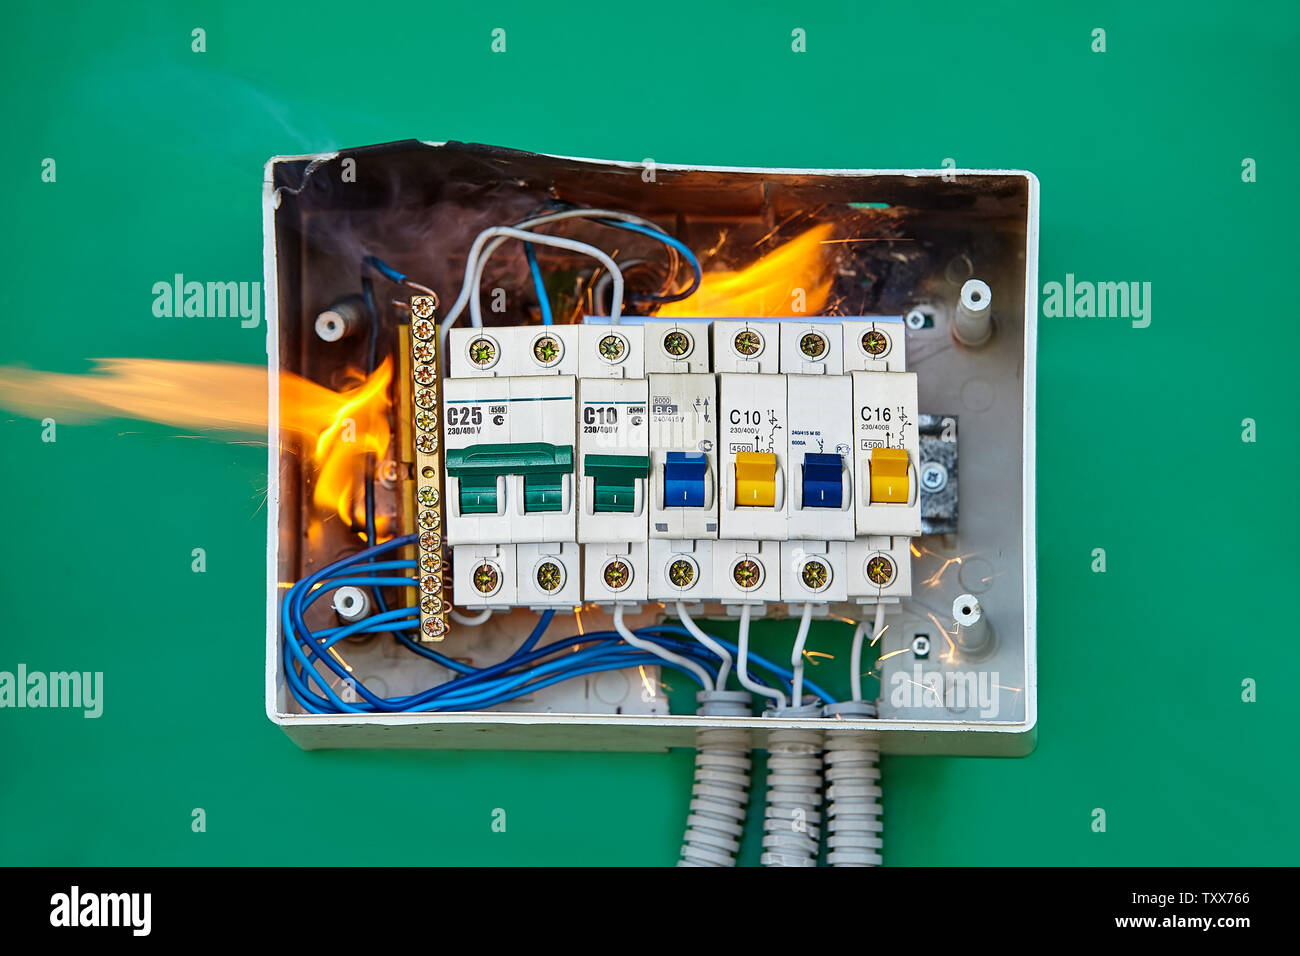 fuse box house high resolution stock photography and images - alamy  alamy